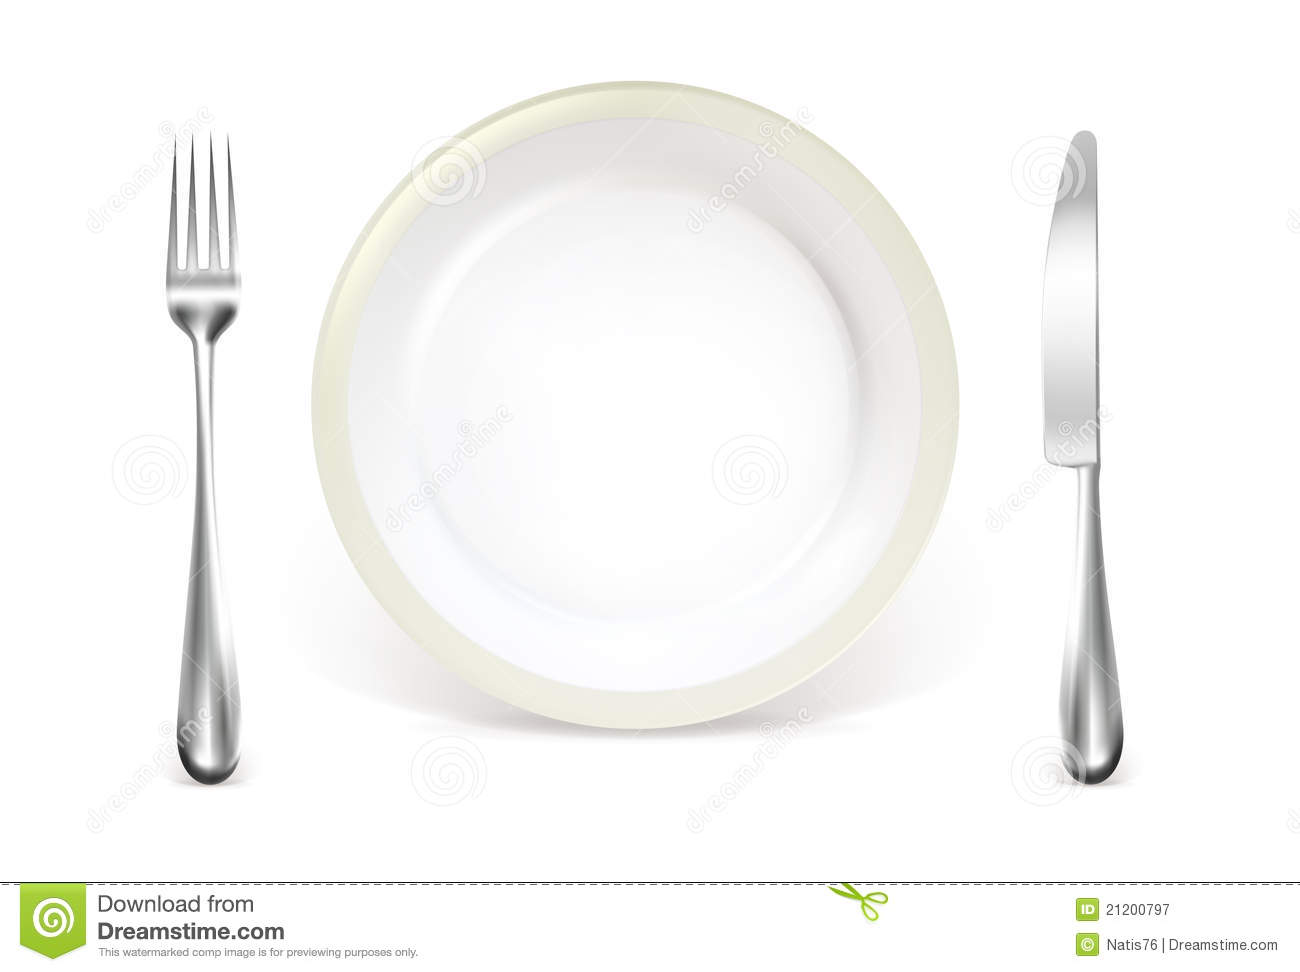 Formal dinner table setting ideas - Dinner Place Setting Royalty Free Stock Photography